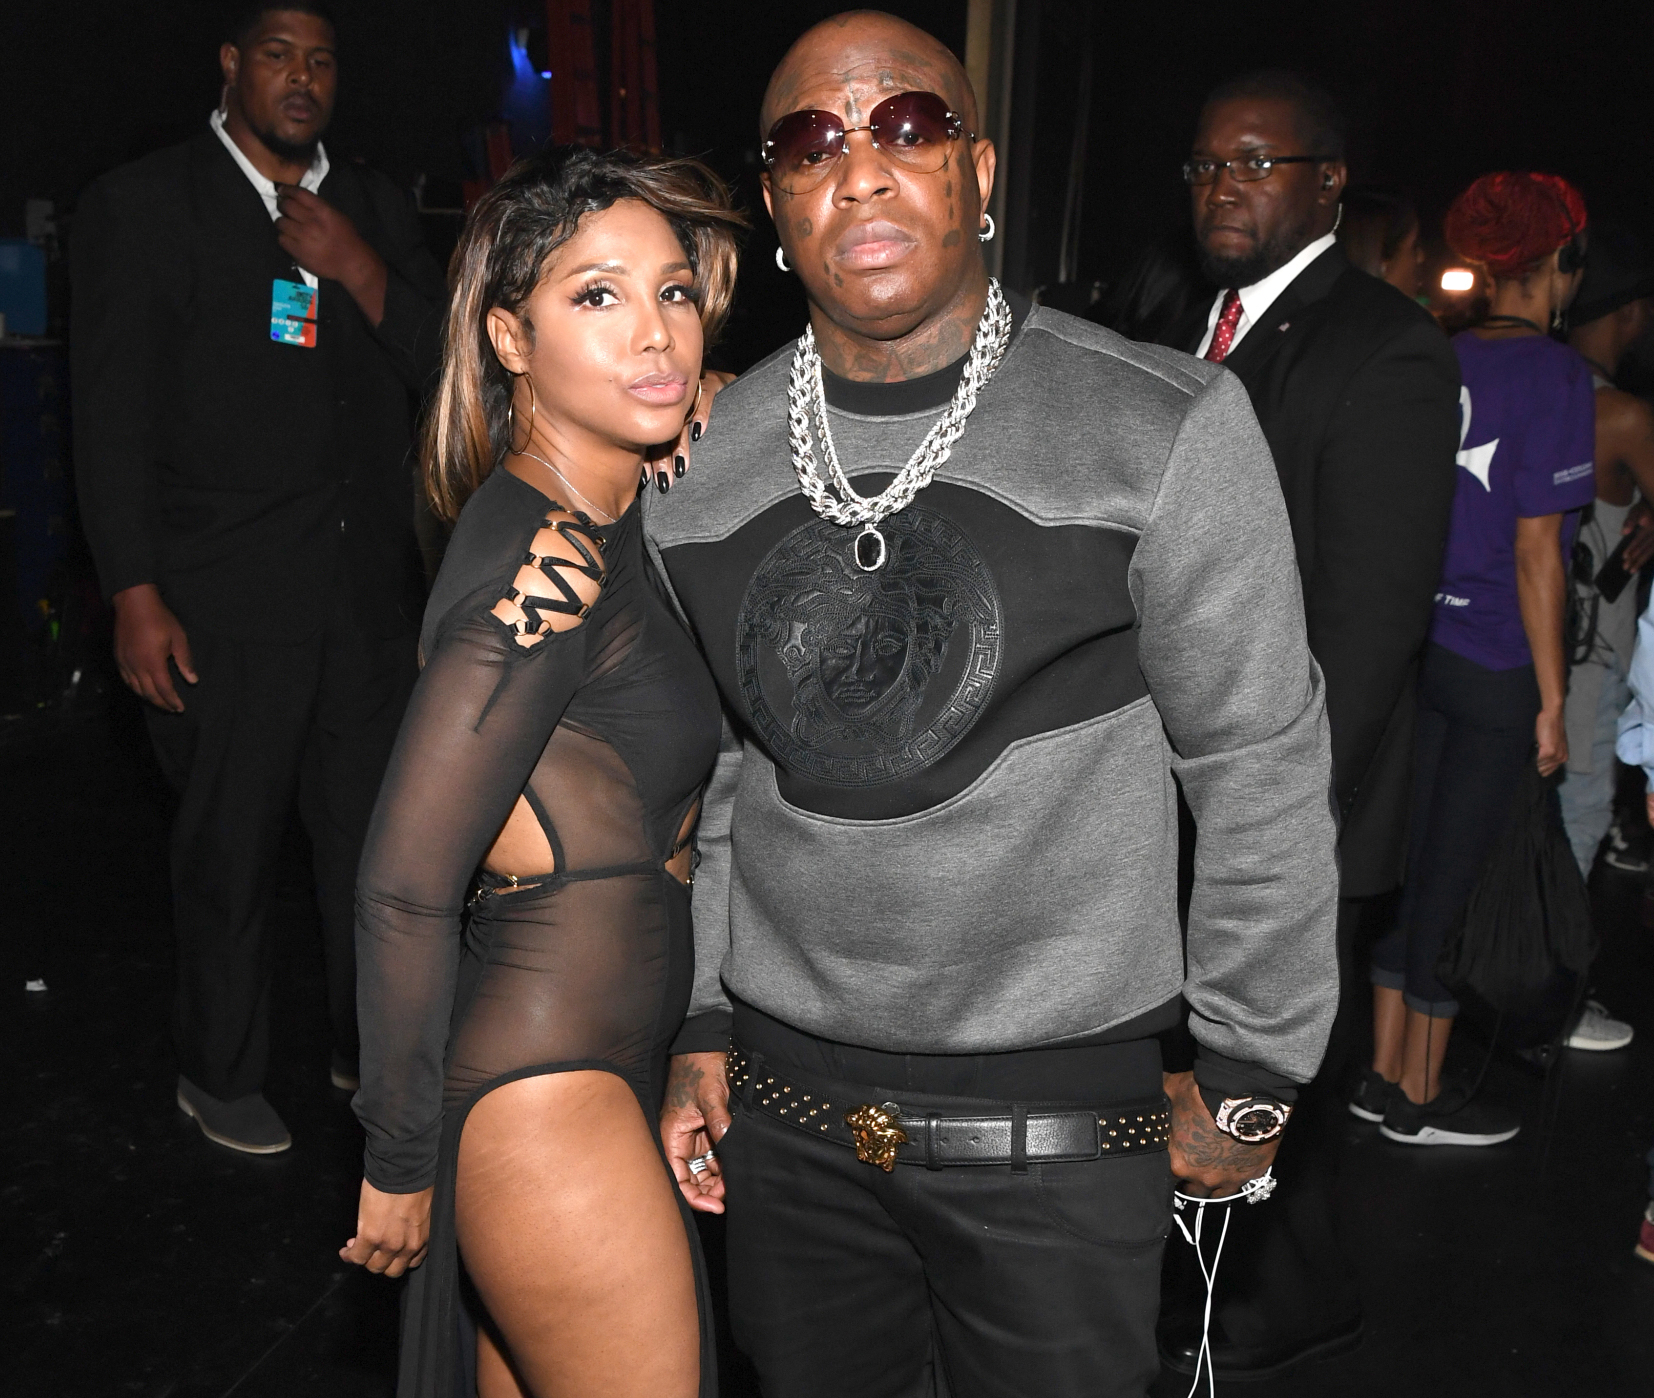 LOS ANGELES, CA - JUNE 26: Singer Toni Braxton (L) and recording artists Birdman attend the 2016 BET Awards at the Microsoft Theater on June 26, 2016 in Los Angeles, California. (Photo by Paras Griffin/BET/Getty Images for BET)